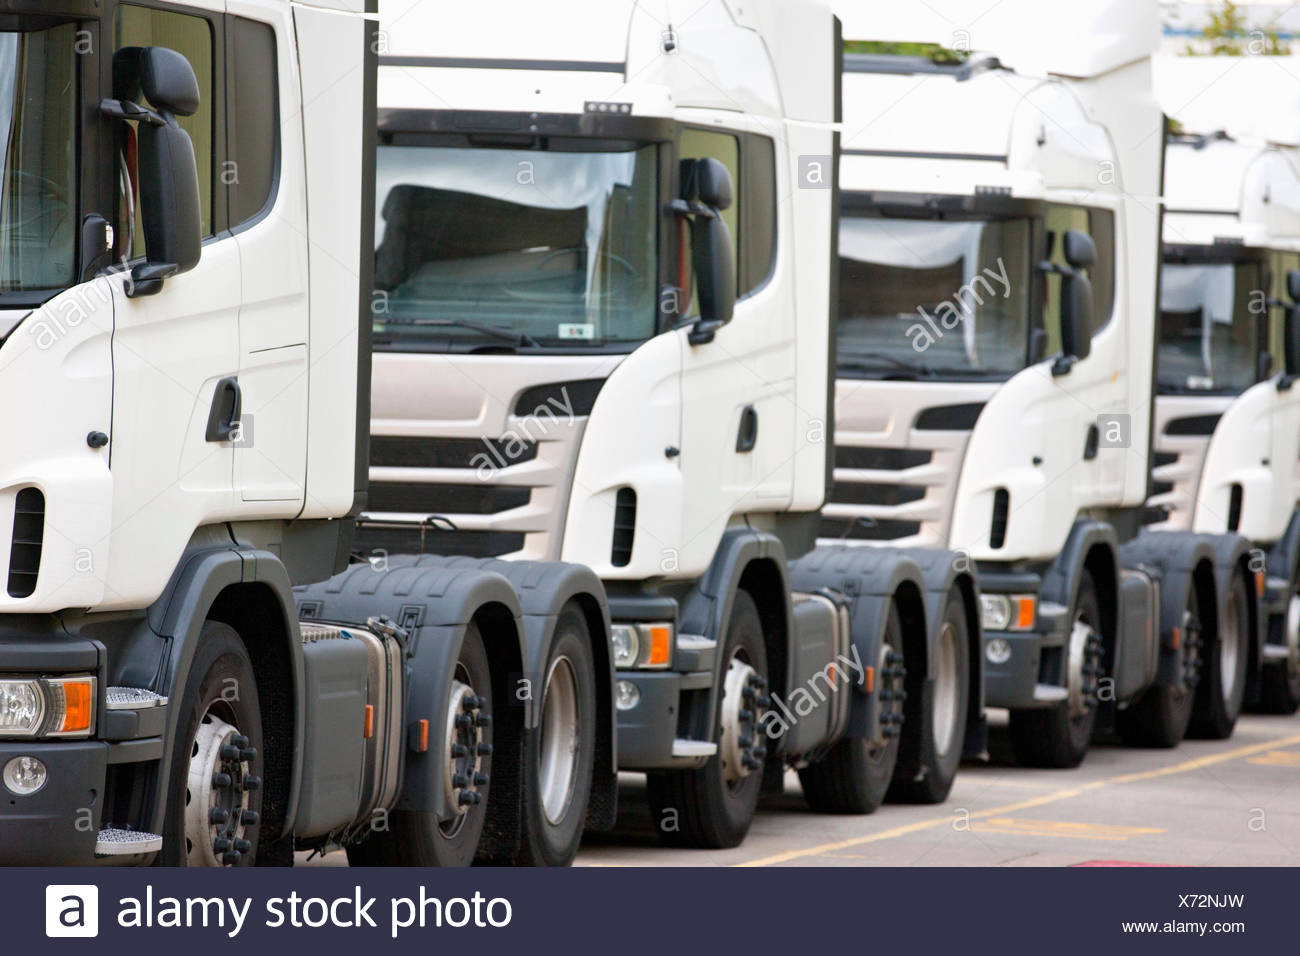 Freight transportation trucks parked in a row - Stock Image